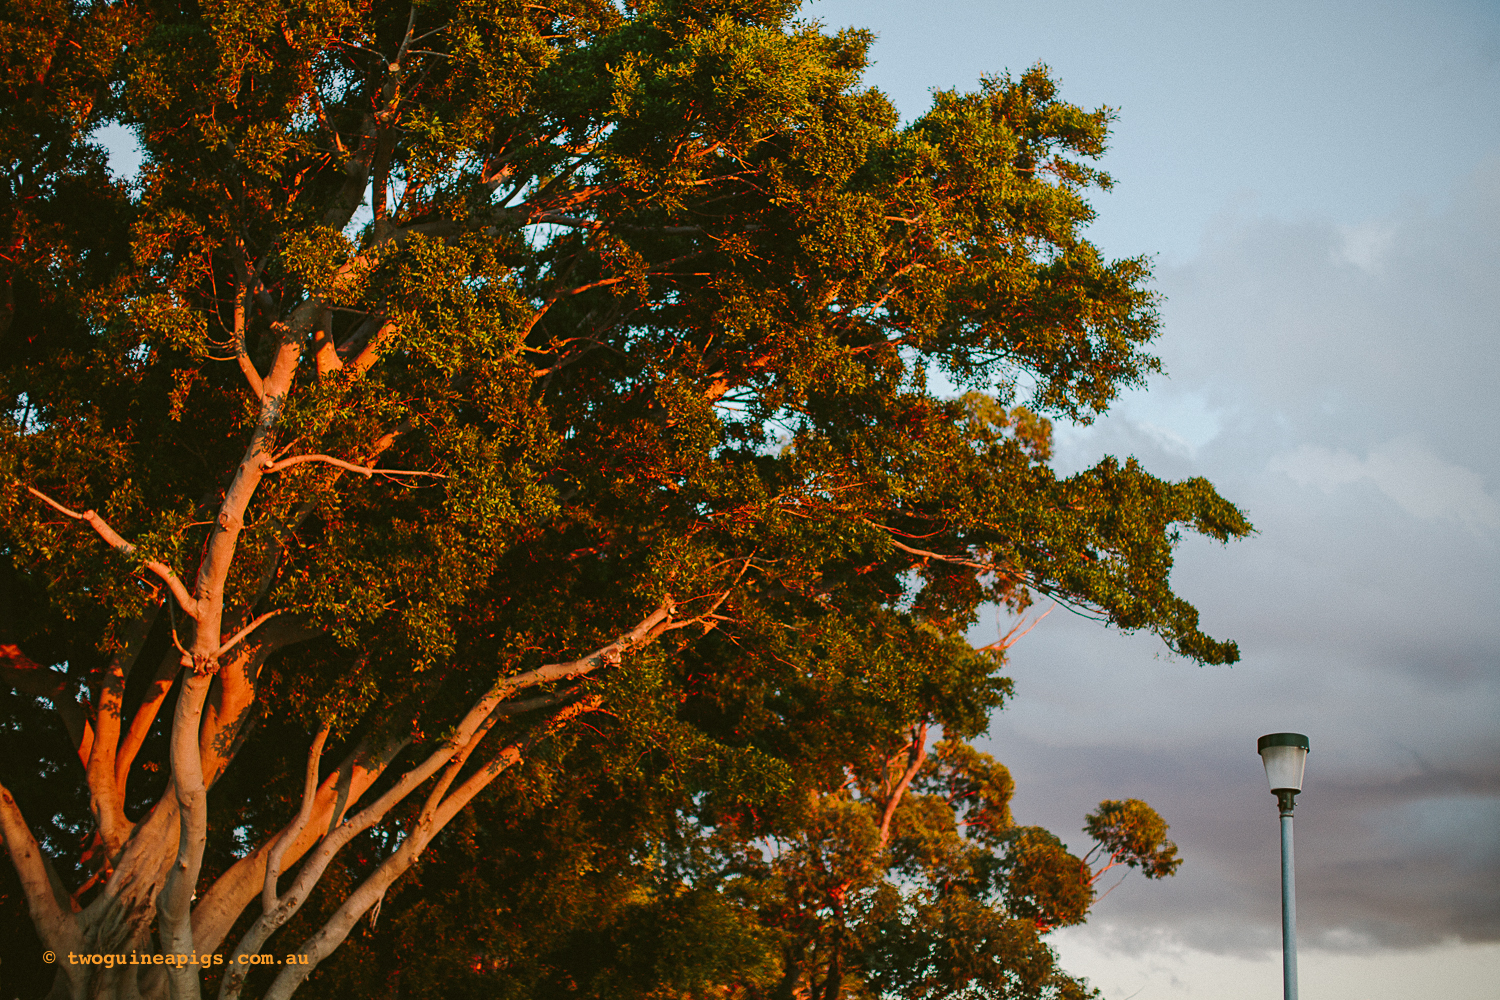 twoguineapigs_rushcutters_bay_winter_sunset_landscapes_1500-17.jpg